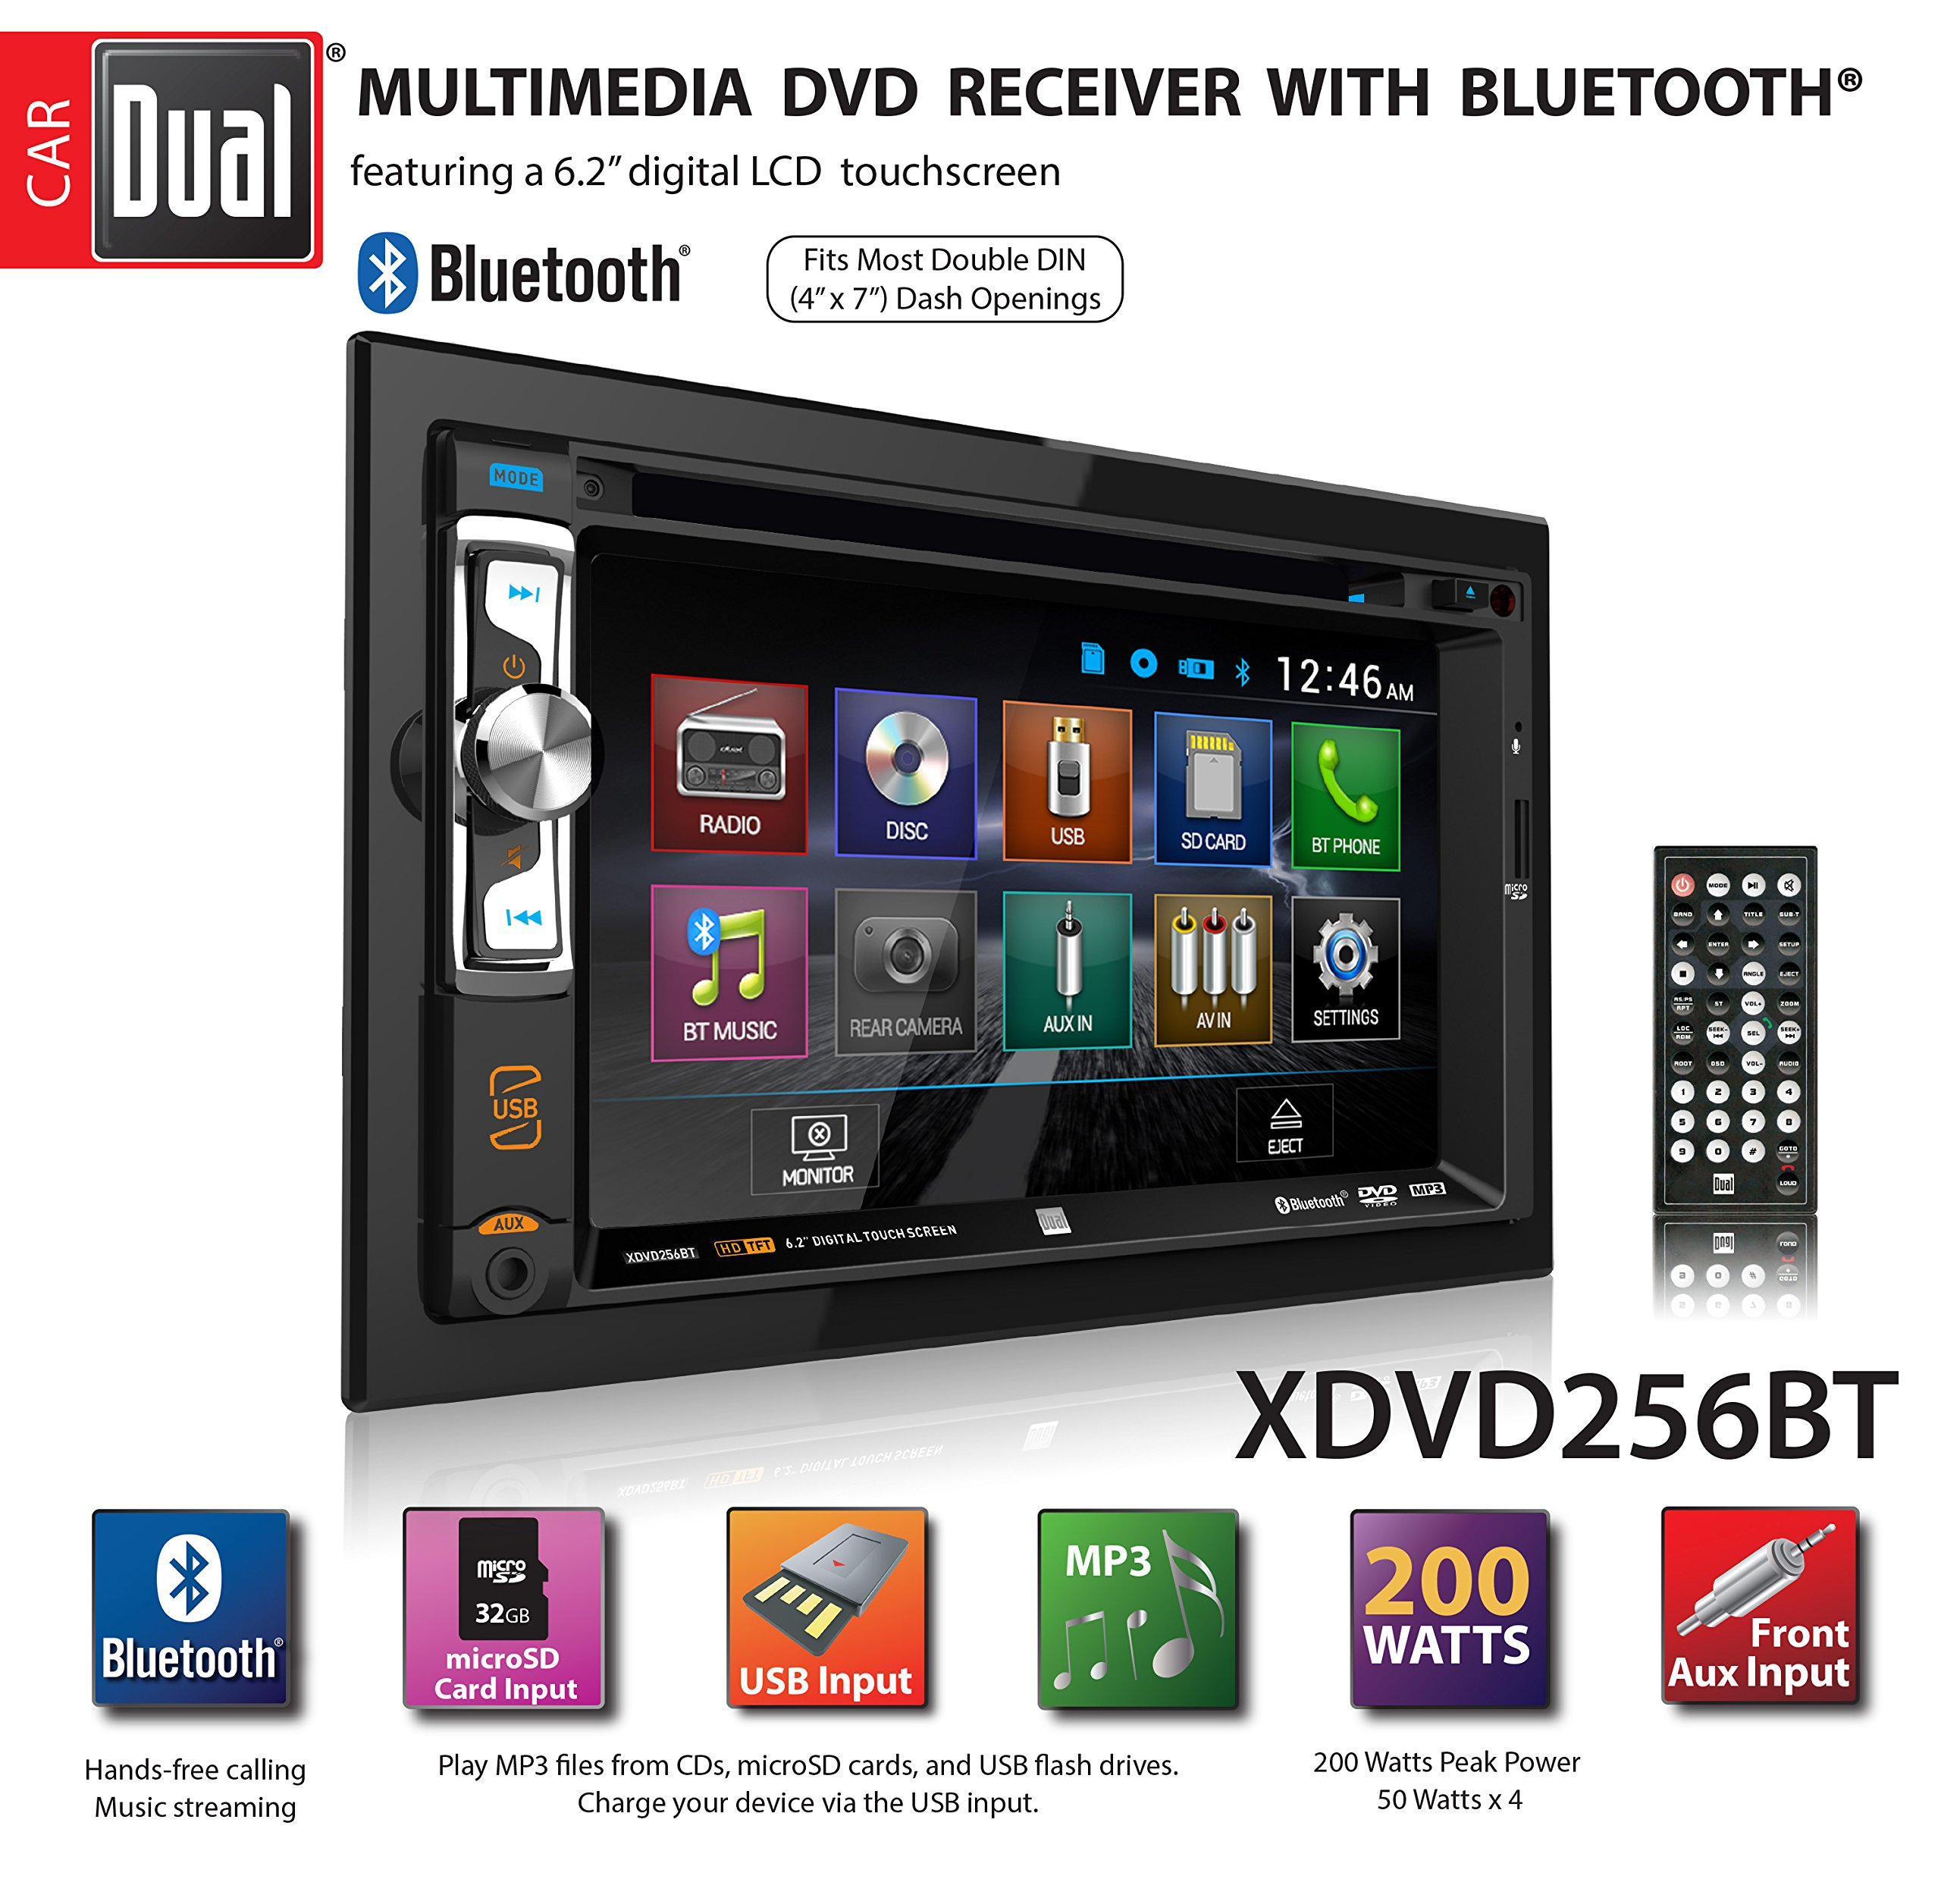 Dual XDVD256BT Digital Multimedia 6.2'' LED Backlit LCD Touchscreen Double DIN Car Stereo with Built-in Bluetooth, CD/DVD, USB, microSD & MP3 Player